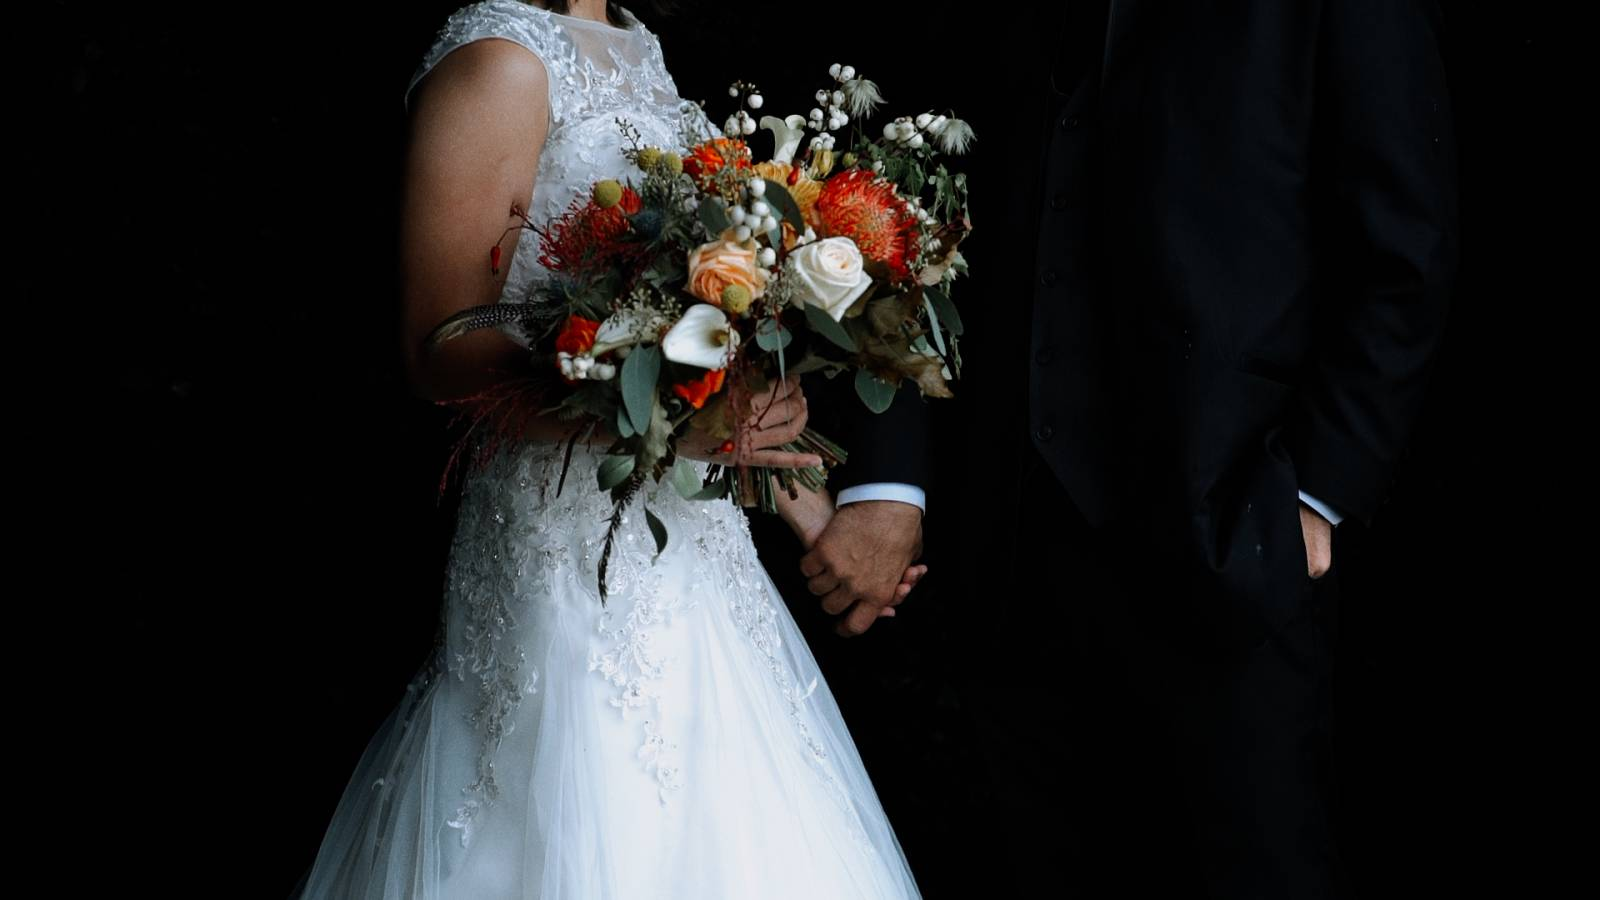 wedding portrait of bride and groom | bouquet inspiration captured by Basecamp Visual